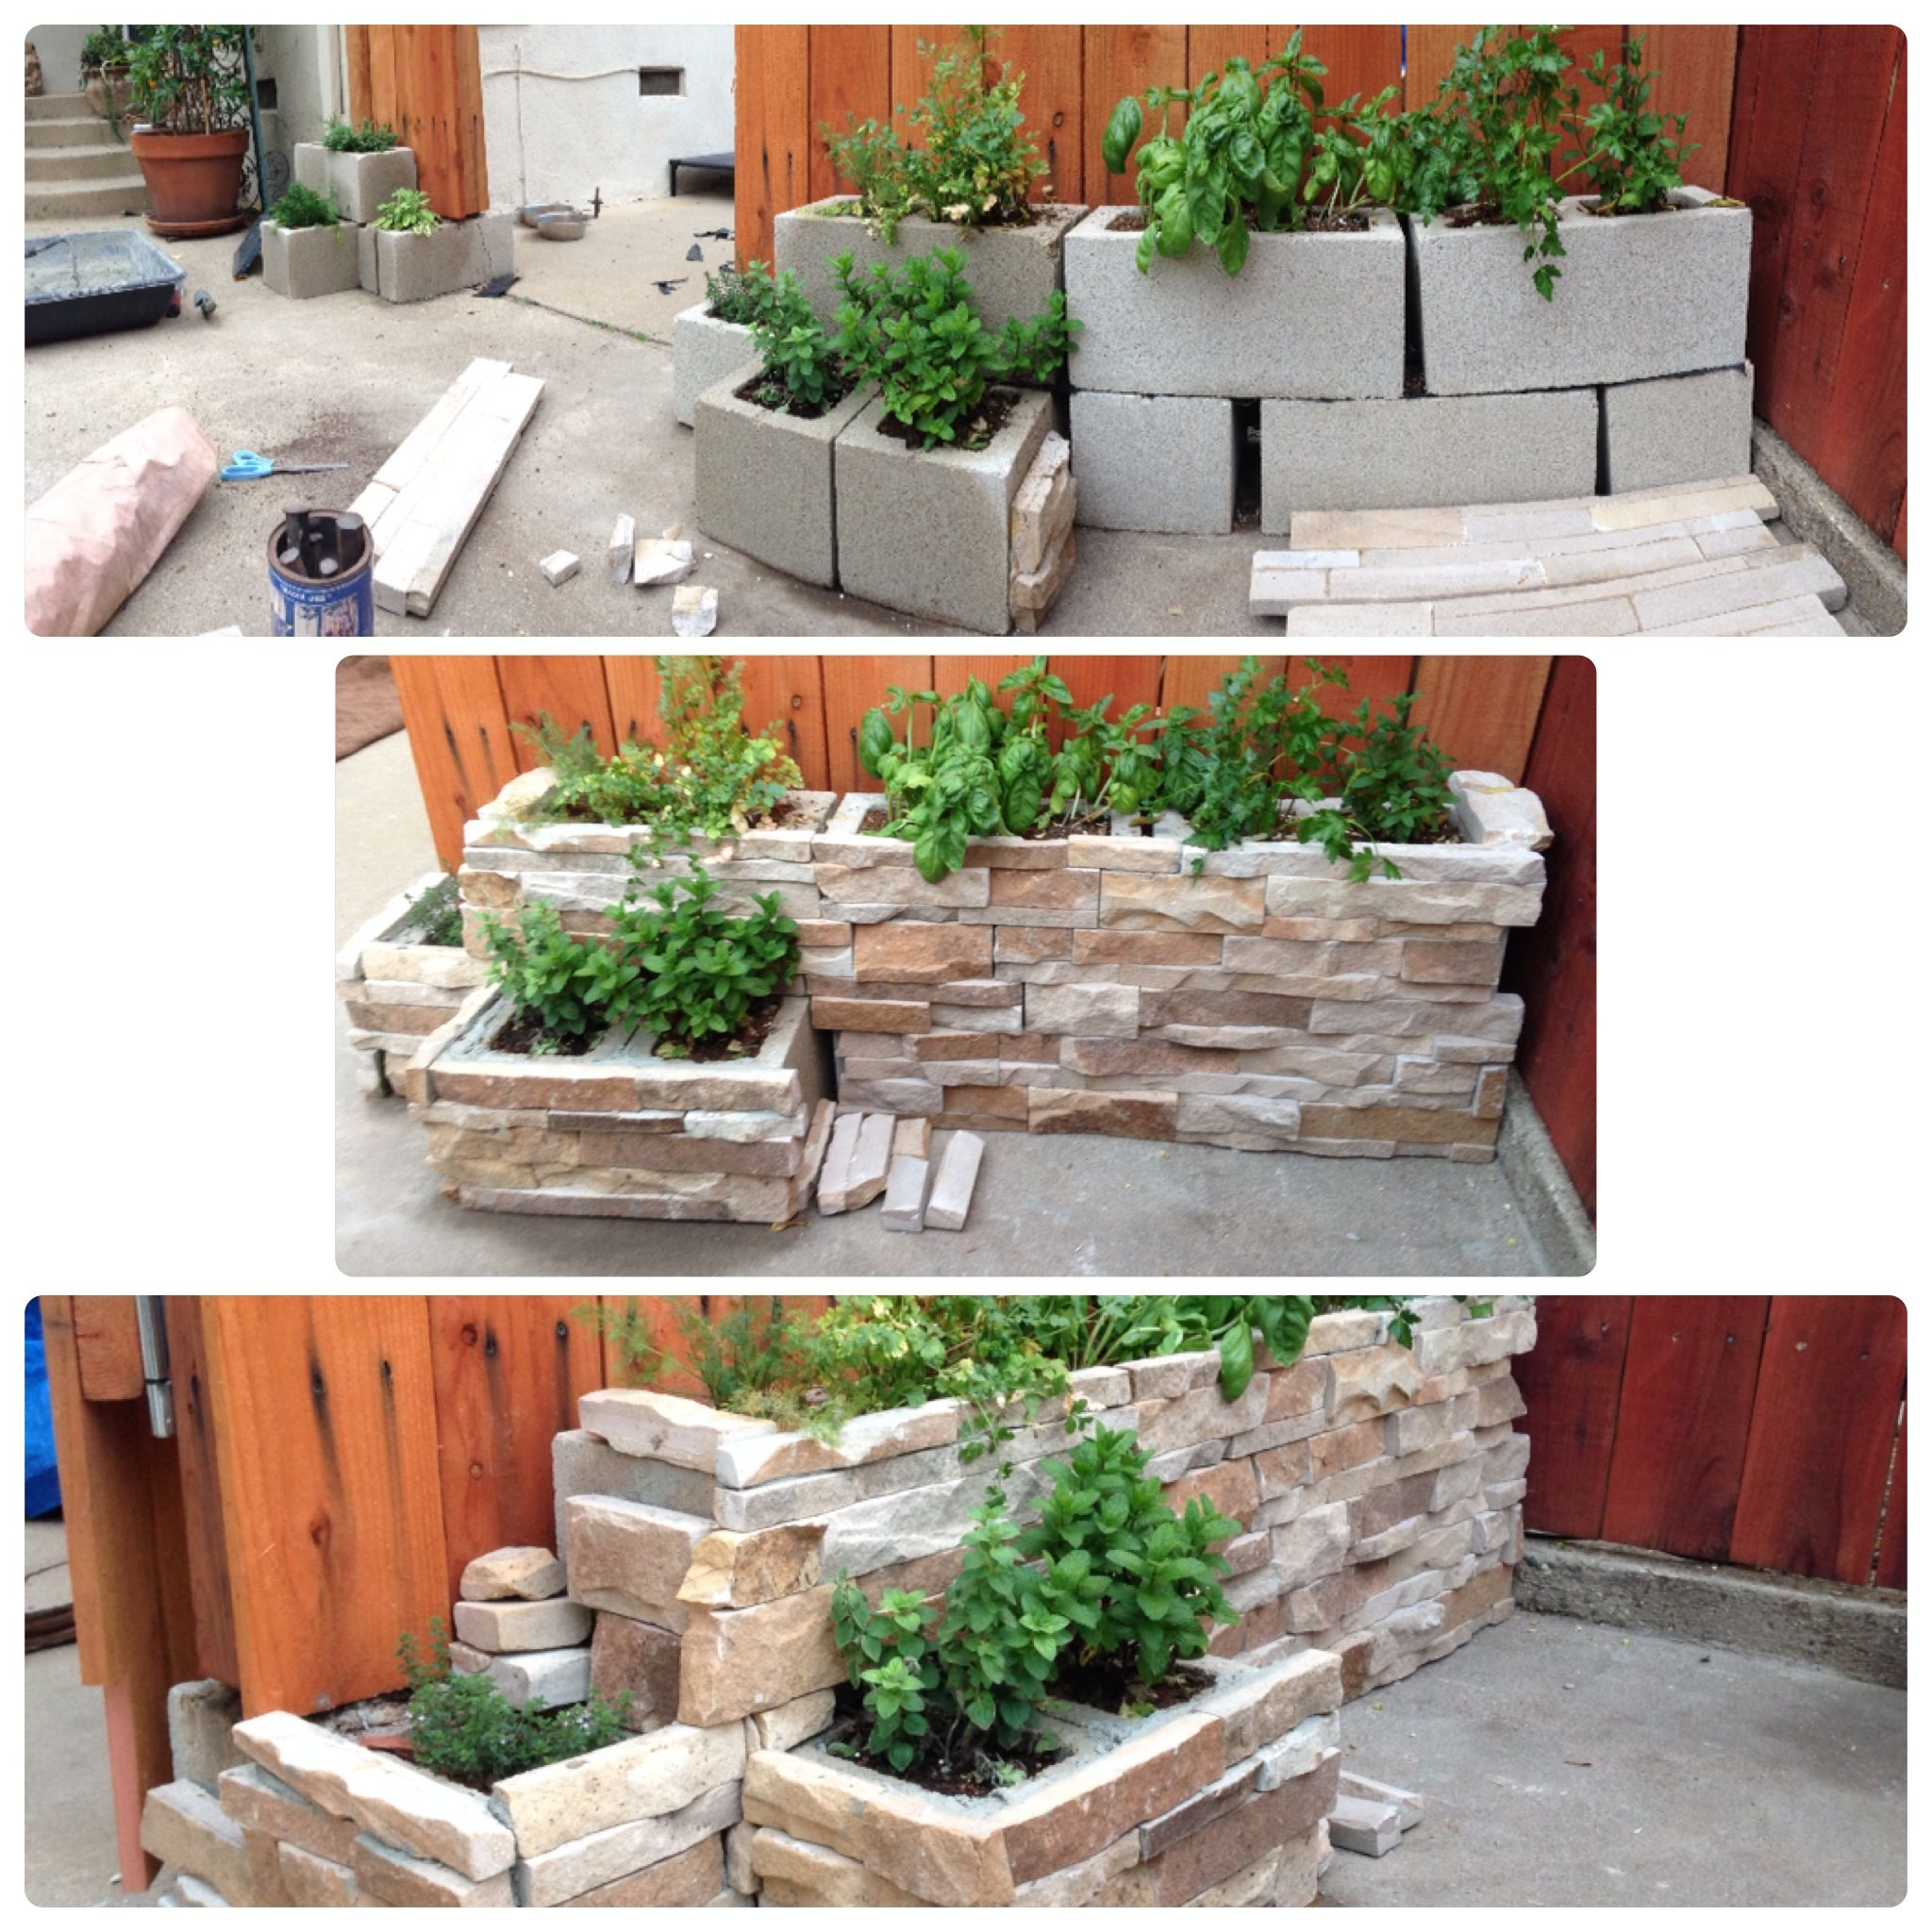 Herb Garden On Fence: Small Herb Garden Made With Cinder Blocks And Rock Facing